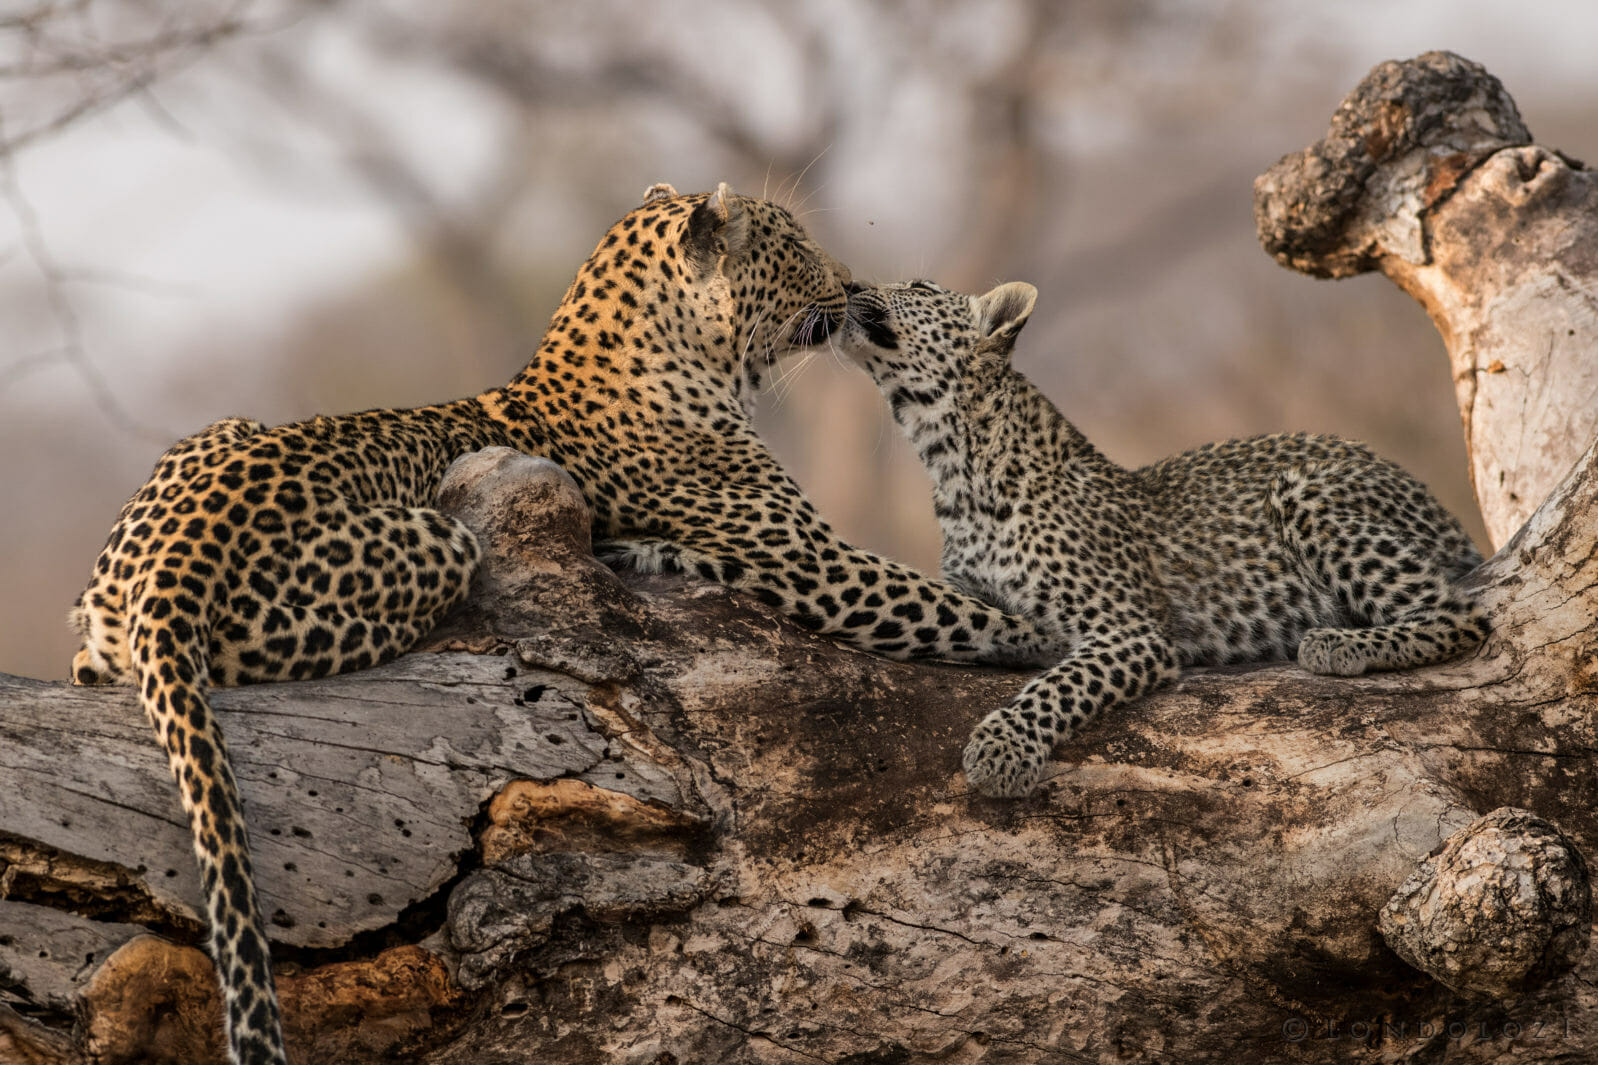 A mother leopard touches noses with her cub at Londolozi